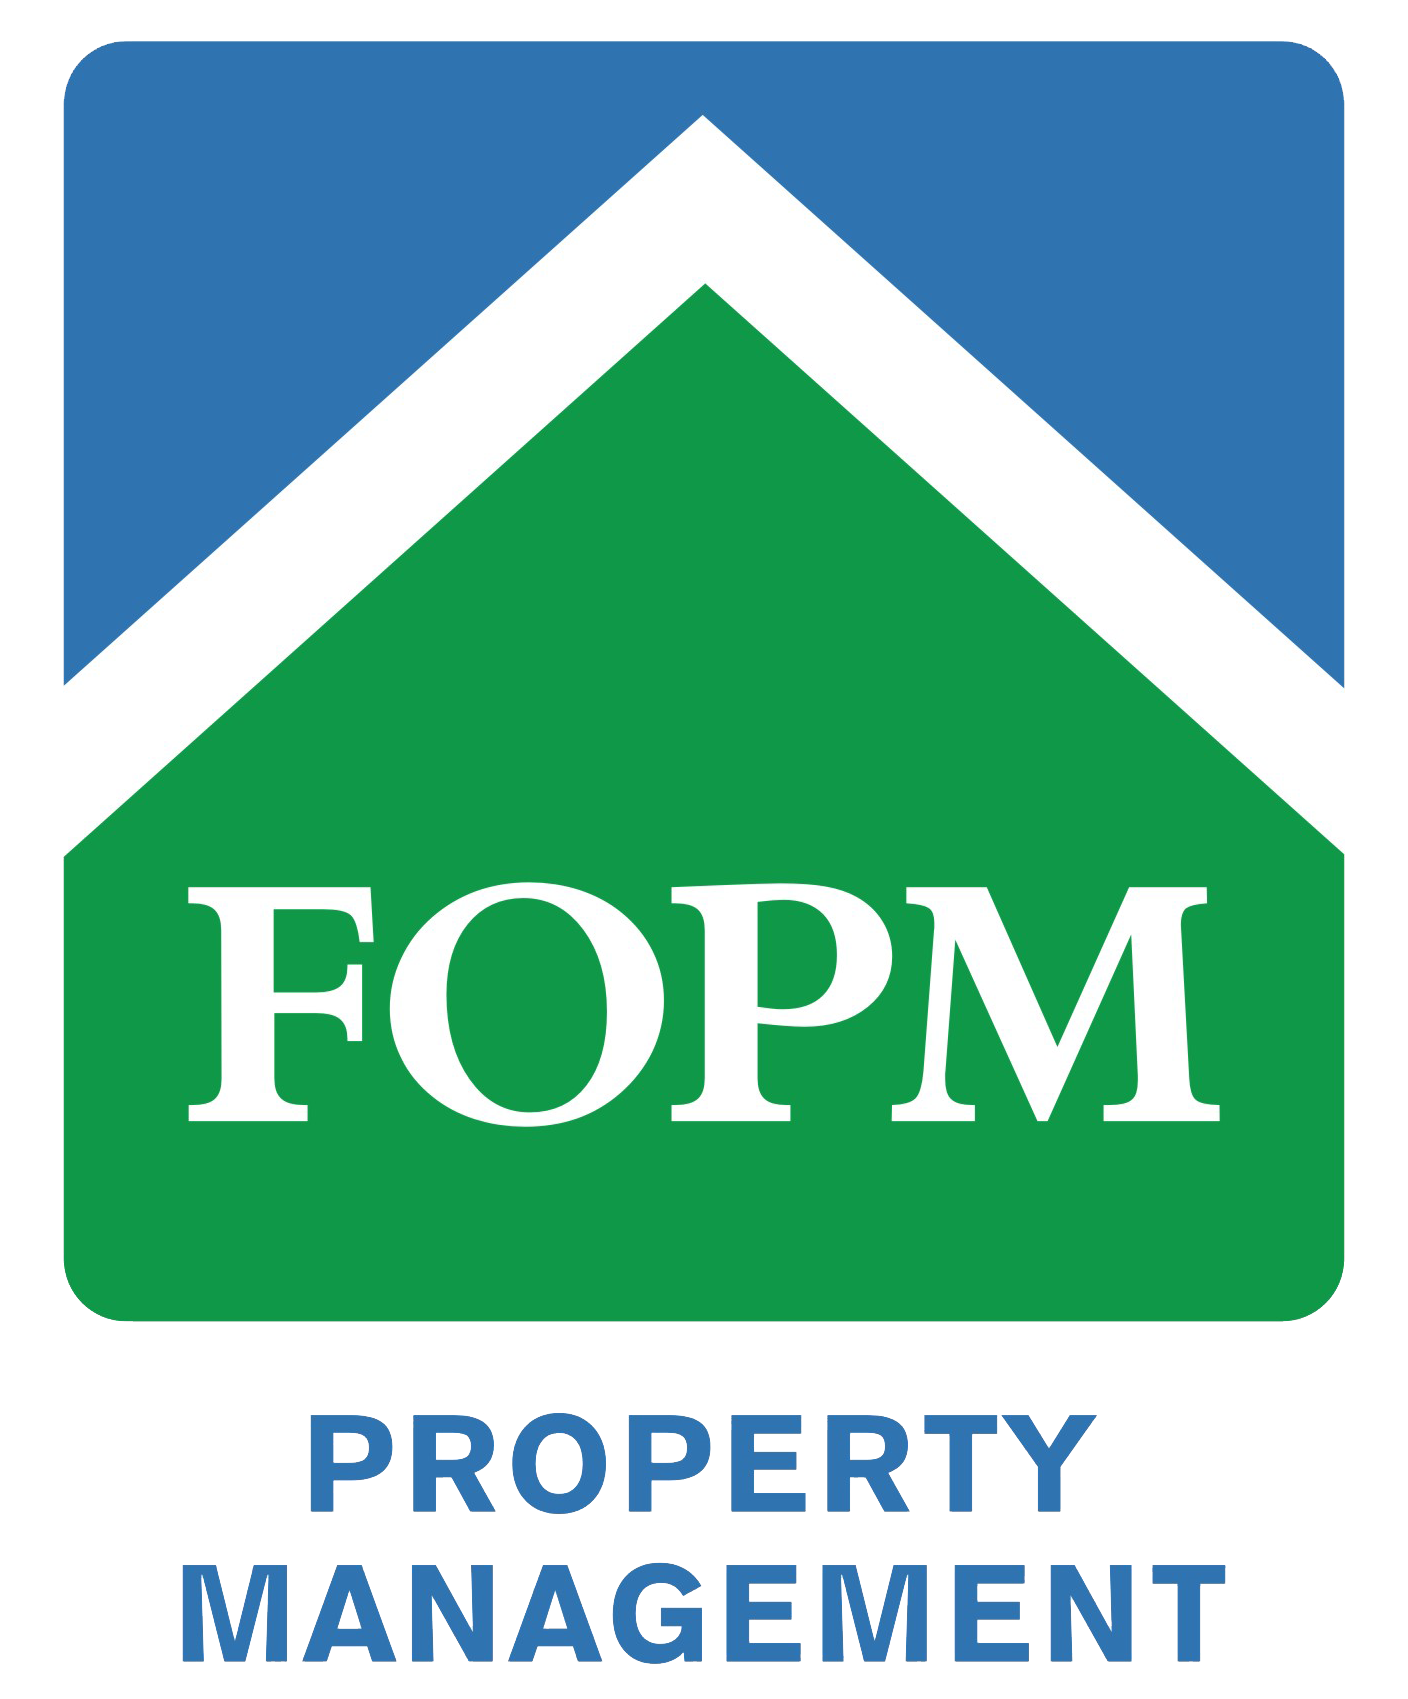 FIRST OCEANIC PROPERTY MANAGEMENT